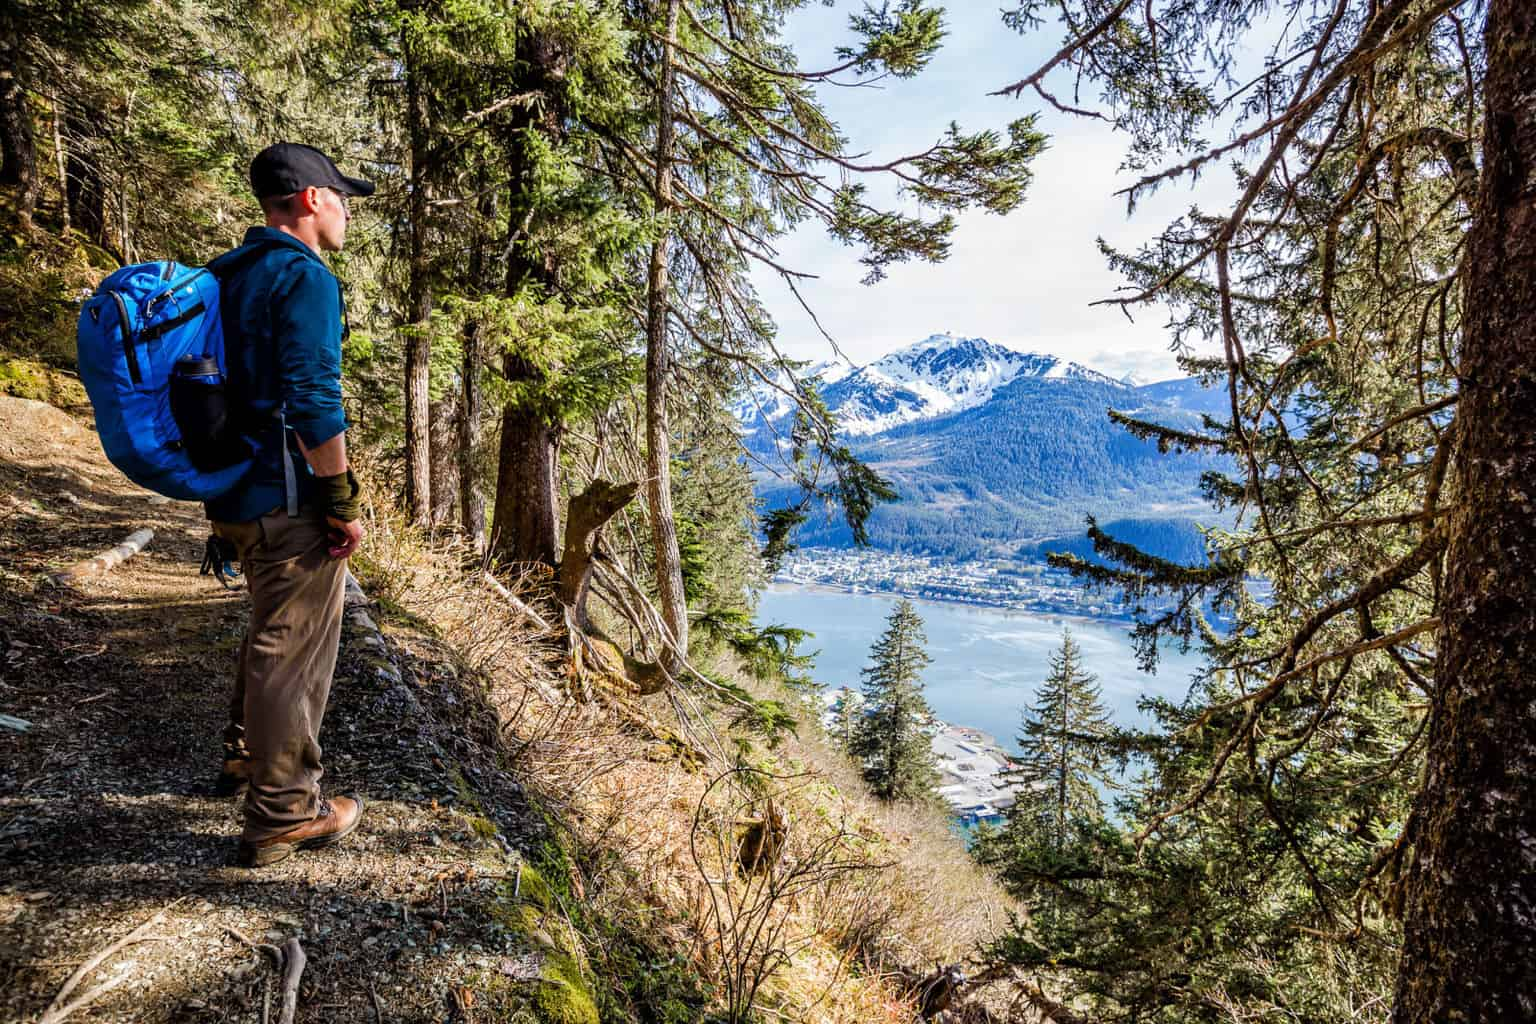 Best Hikes in the USA: 15 Stunning Trails You Cannot Miss